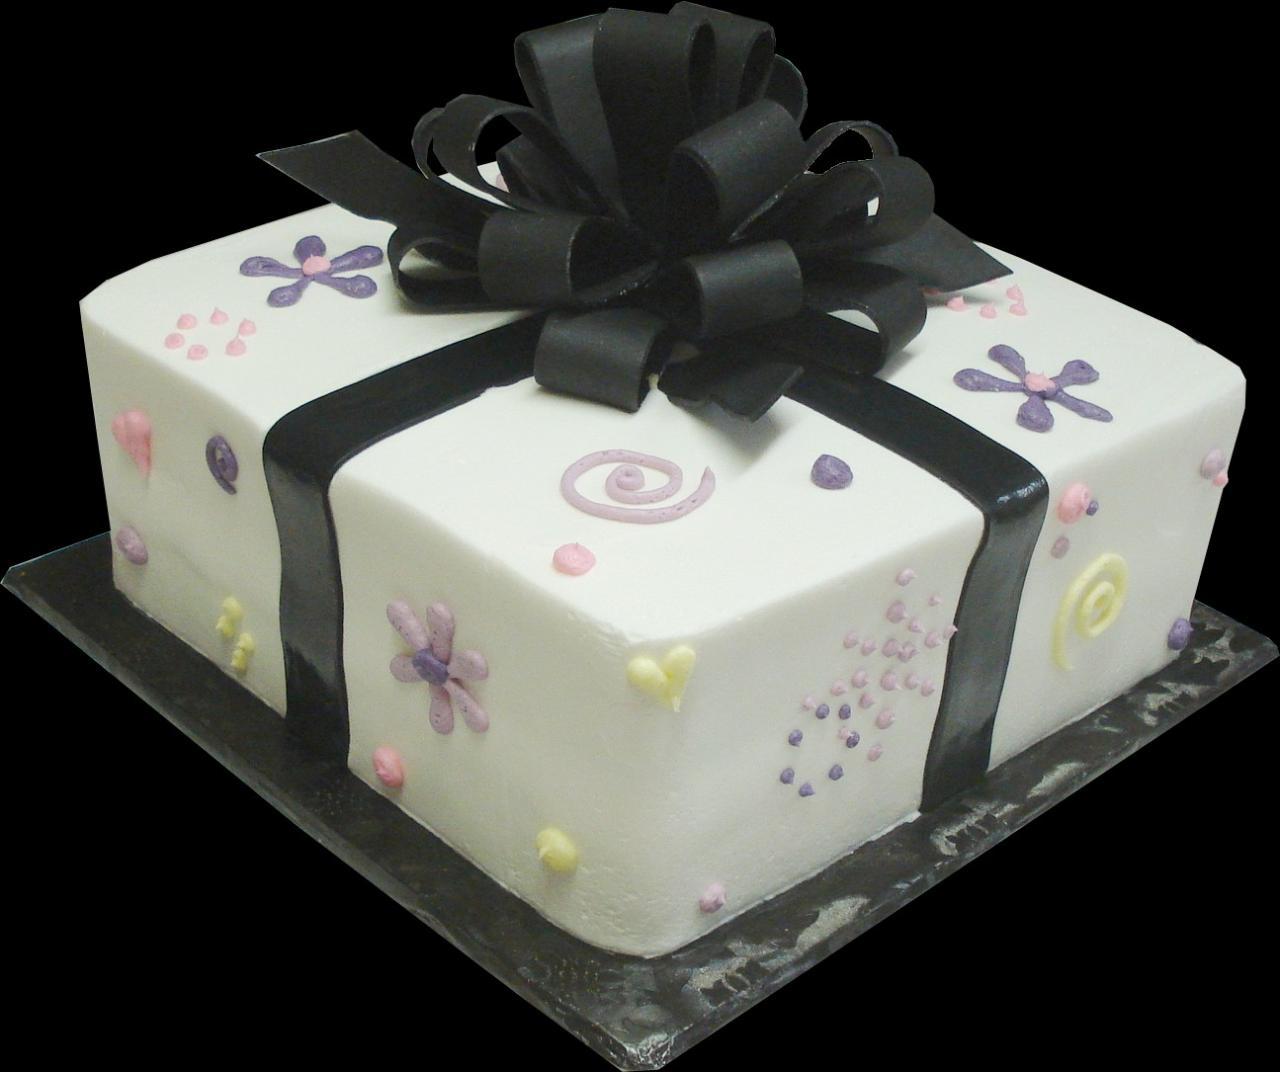 Small Images Of Birthday Cake : Birthday Cakes Sugar Showcase